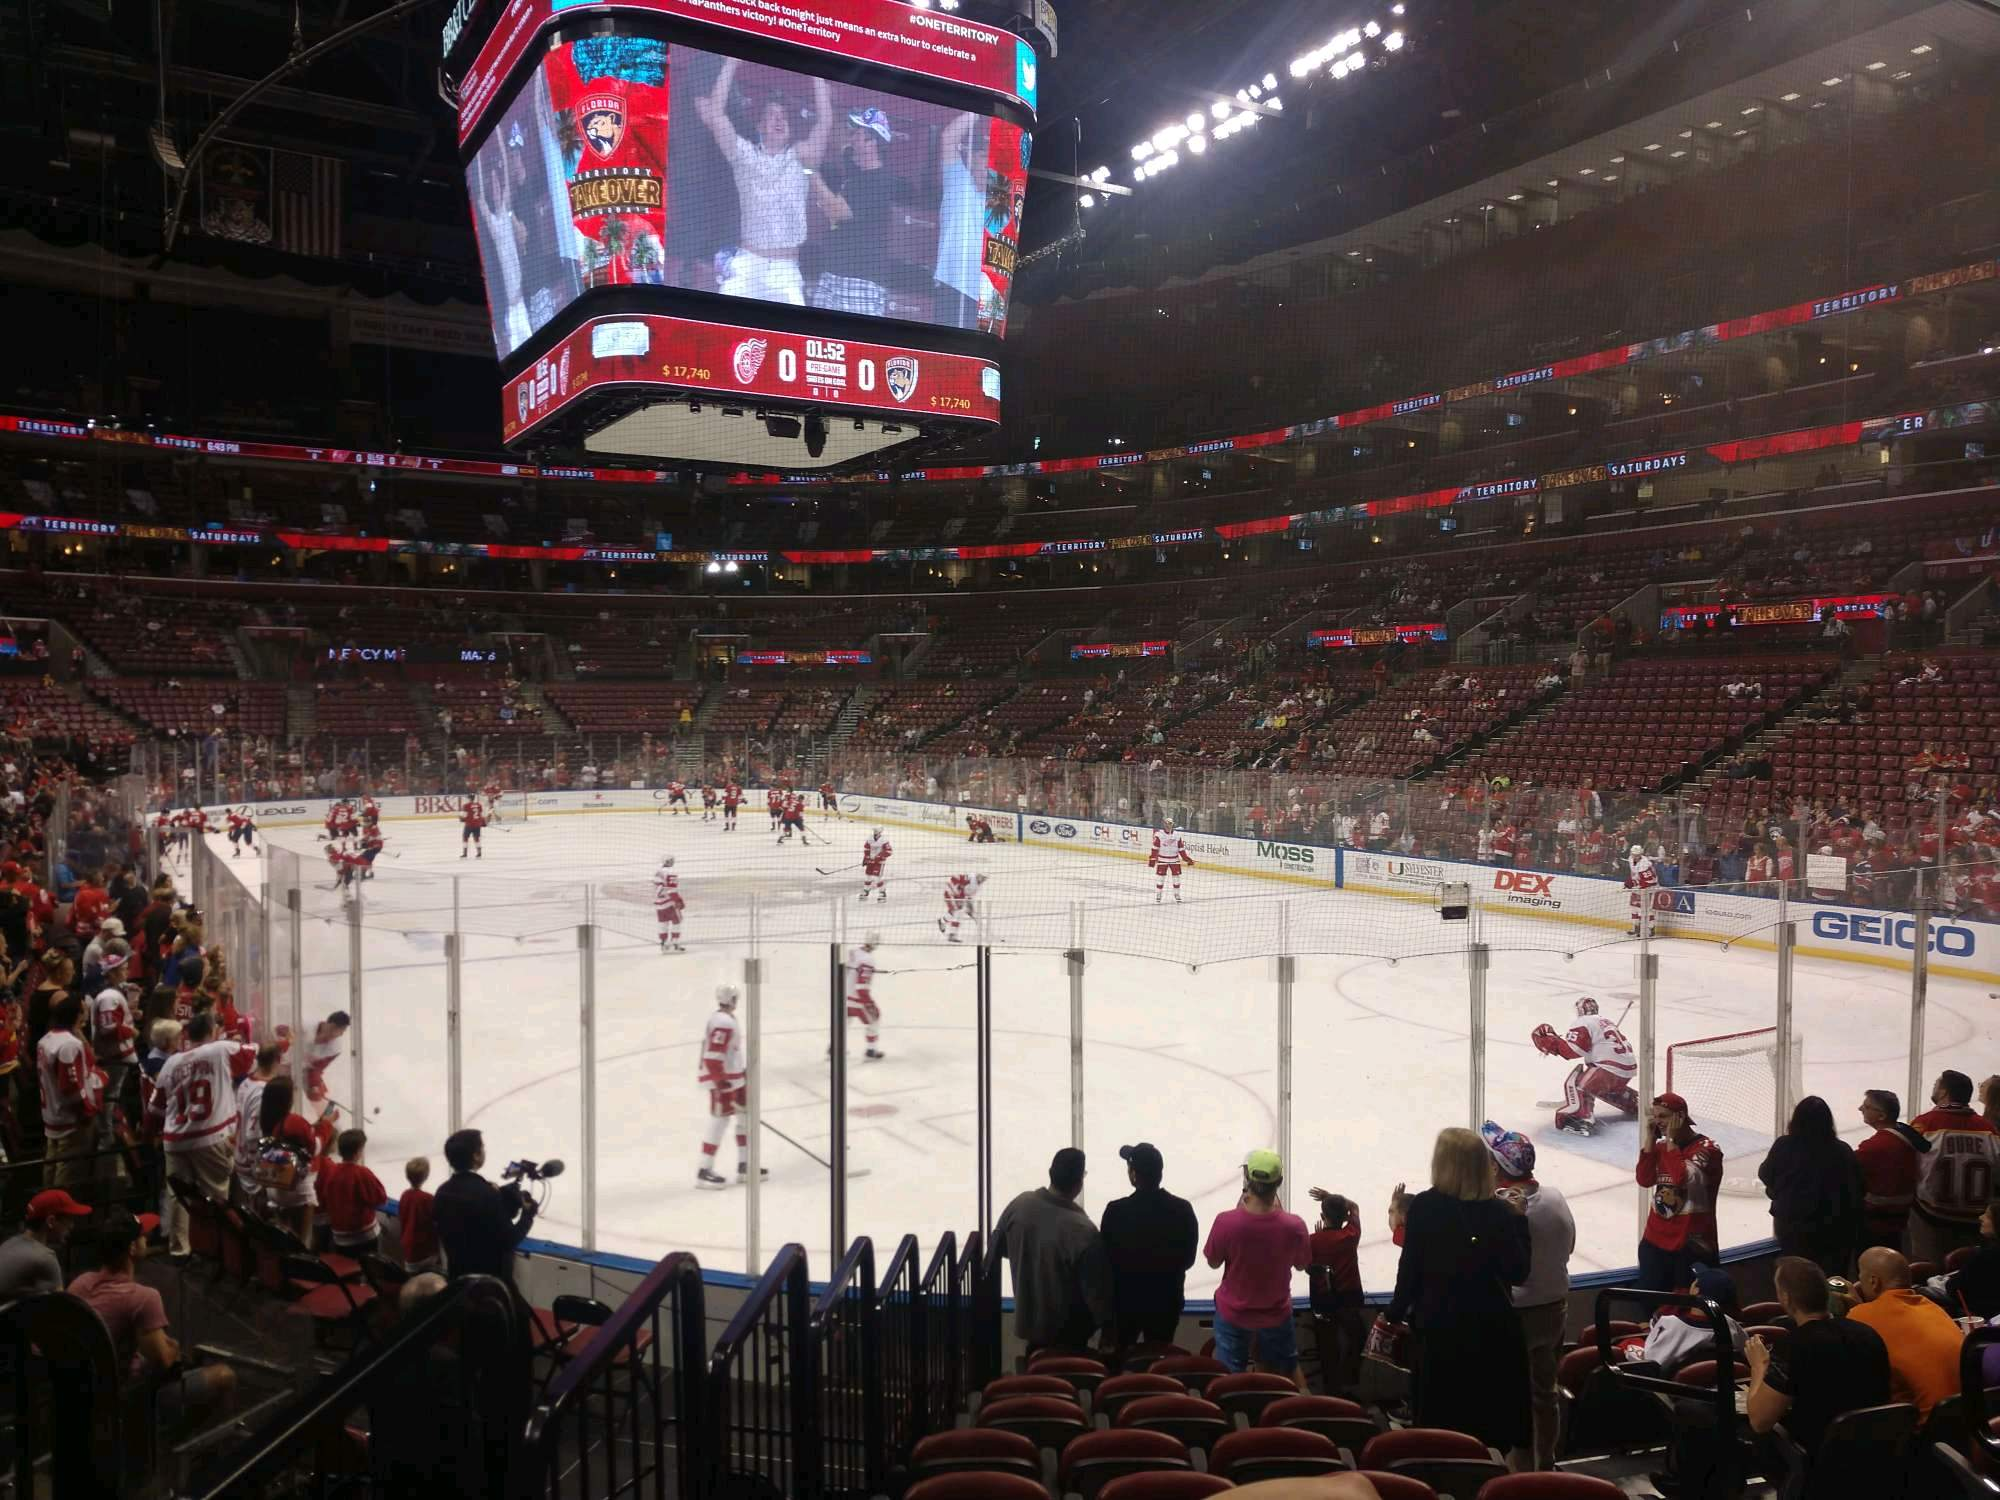 BB&T Center Section 129 Row 11 Seat 5